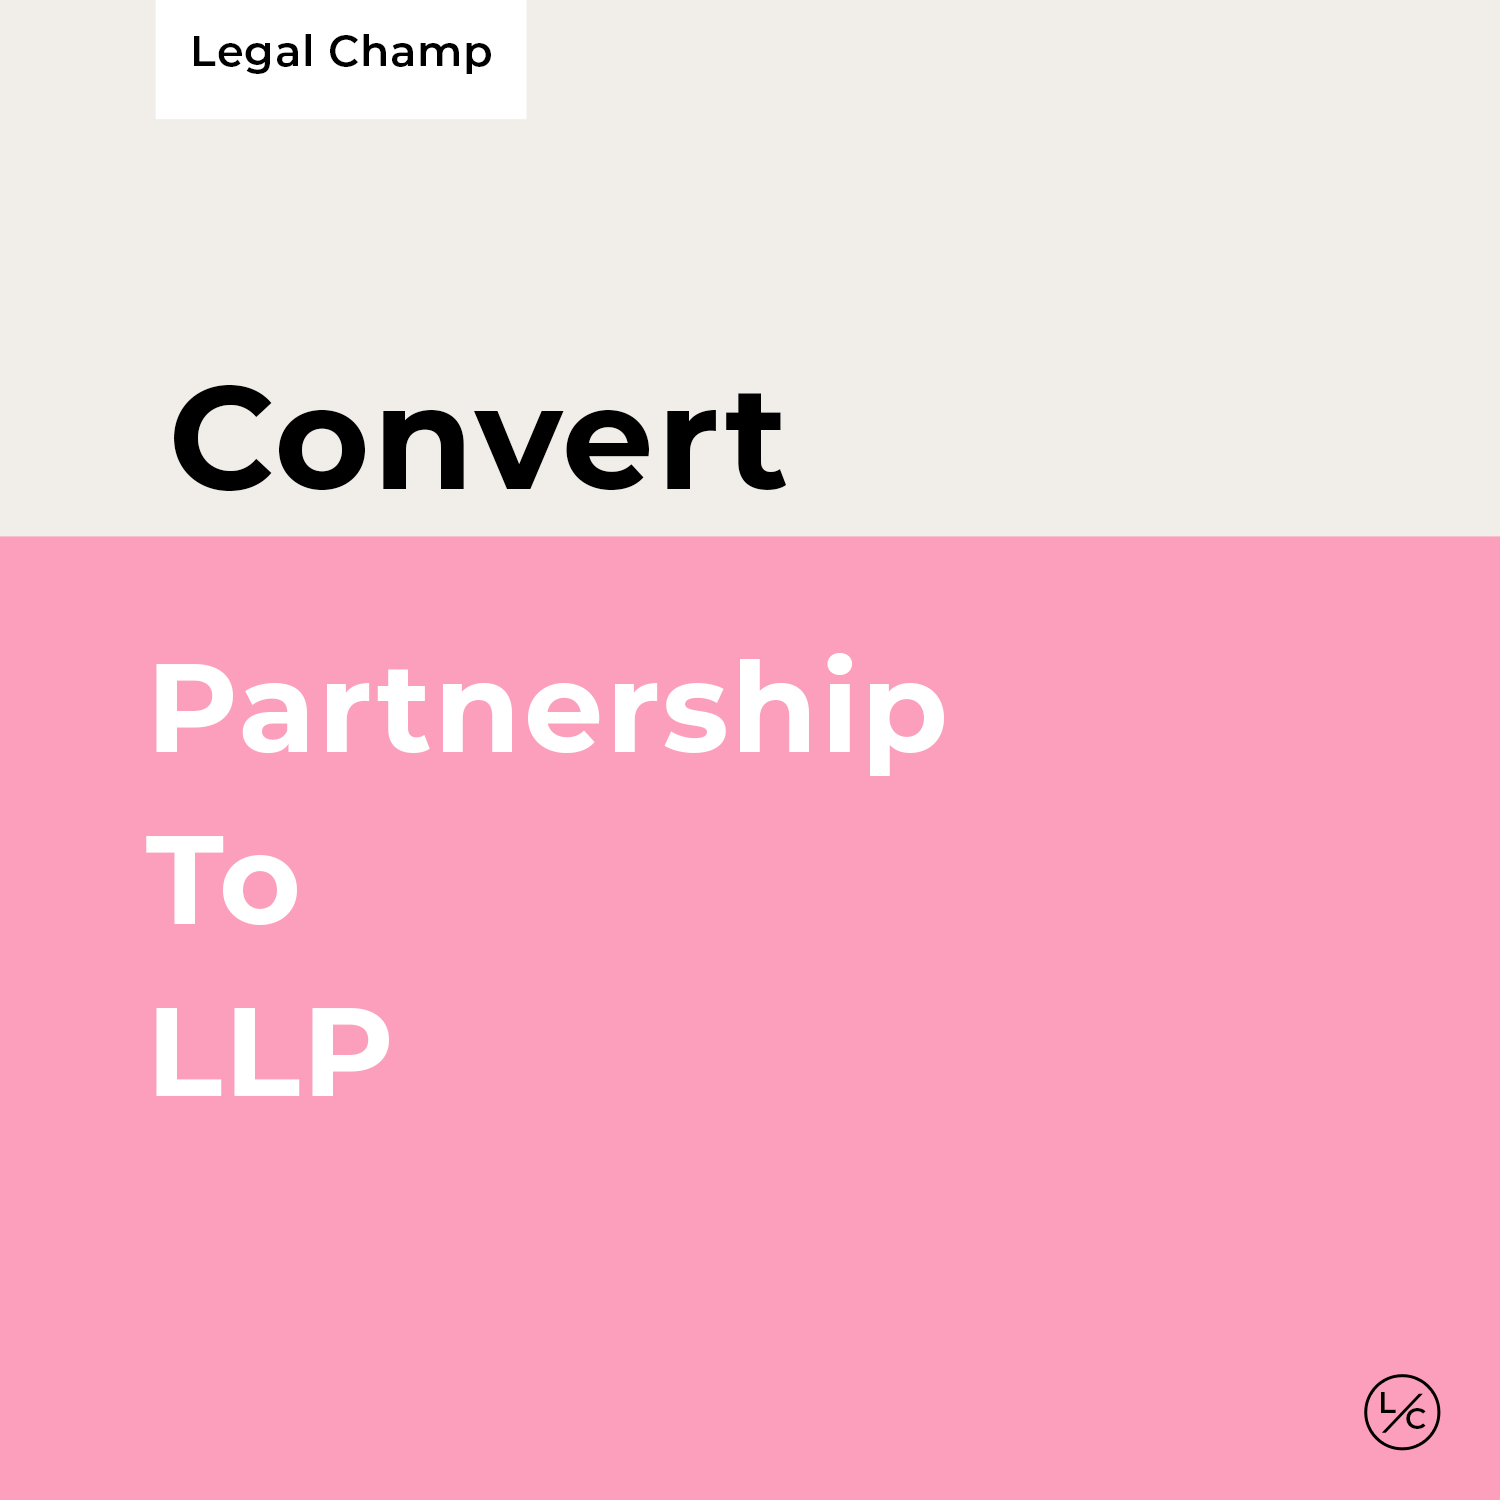 Partnership to LLP